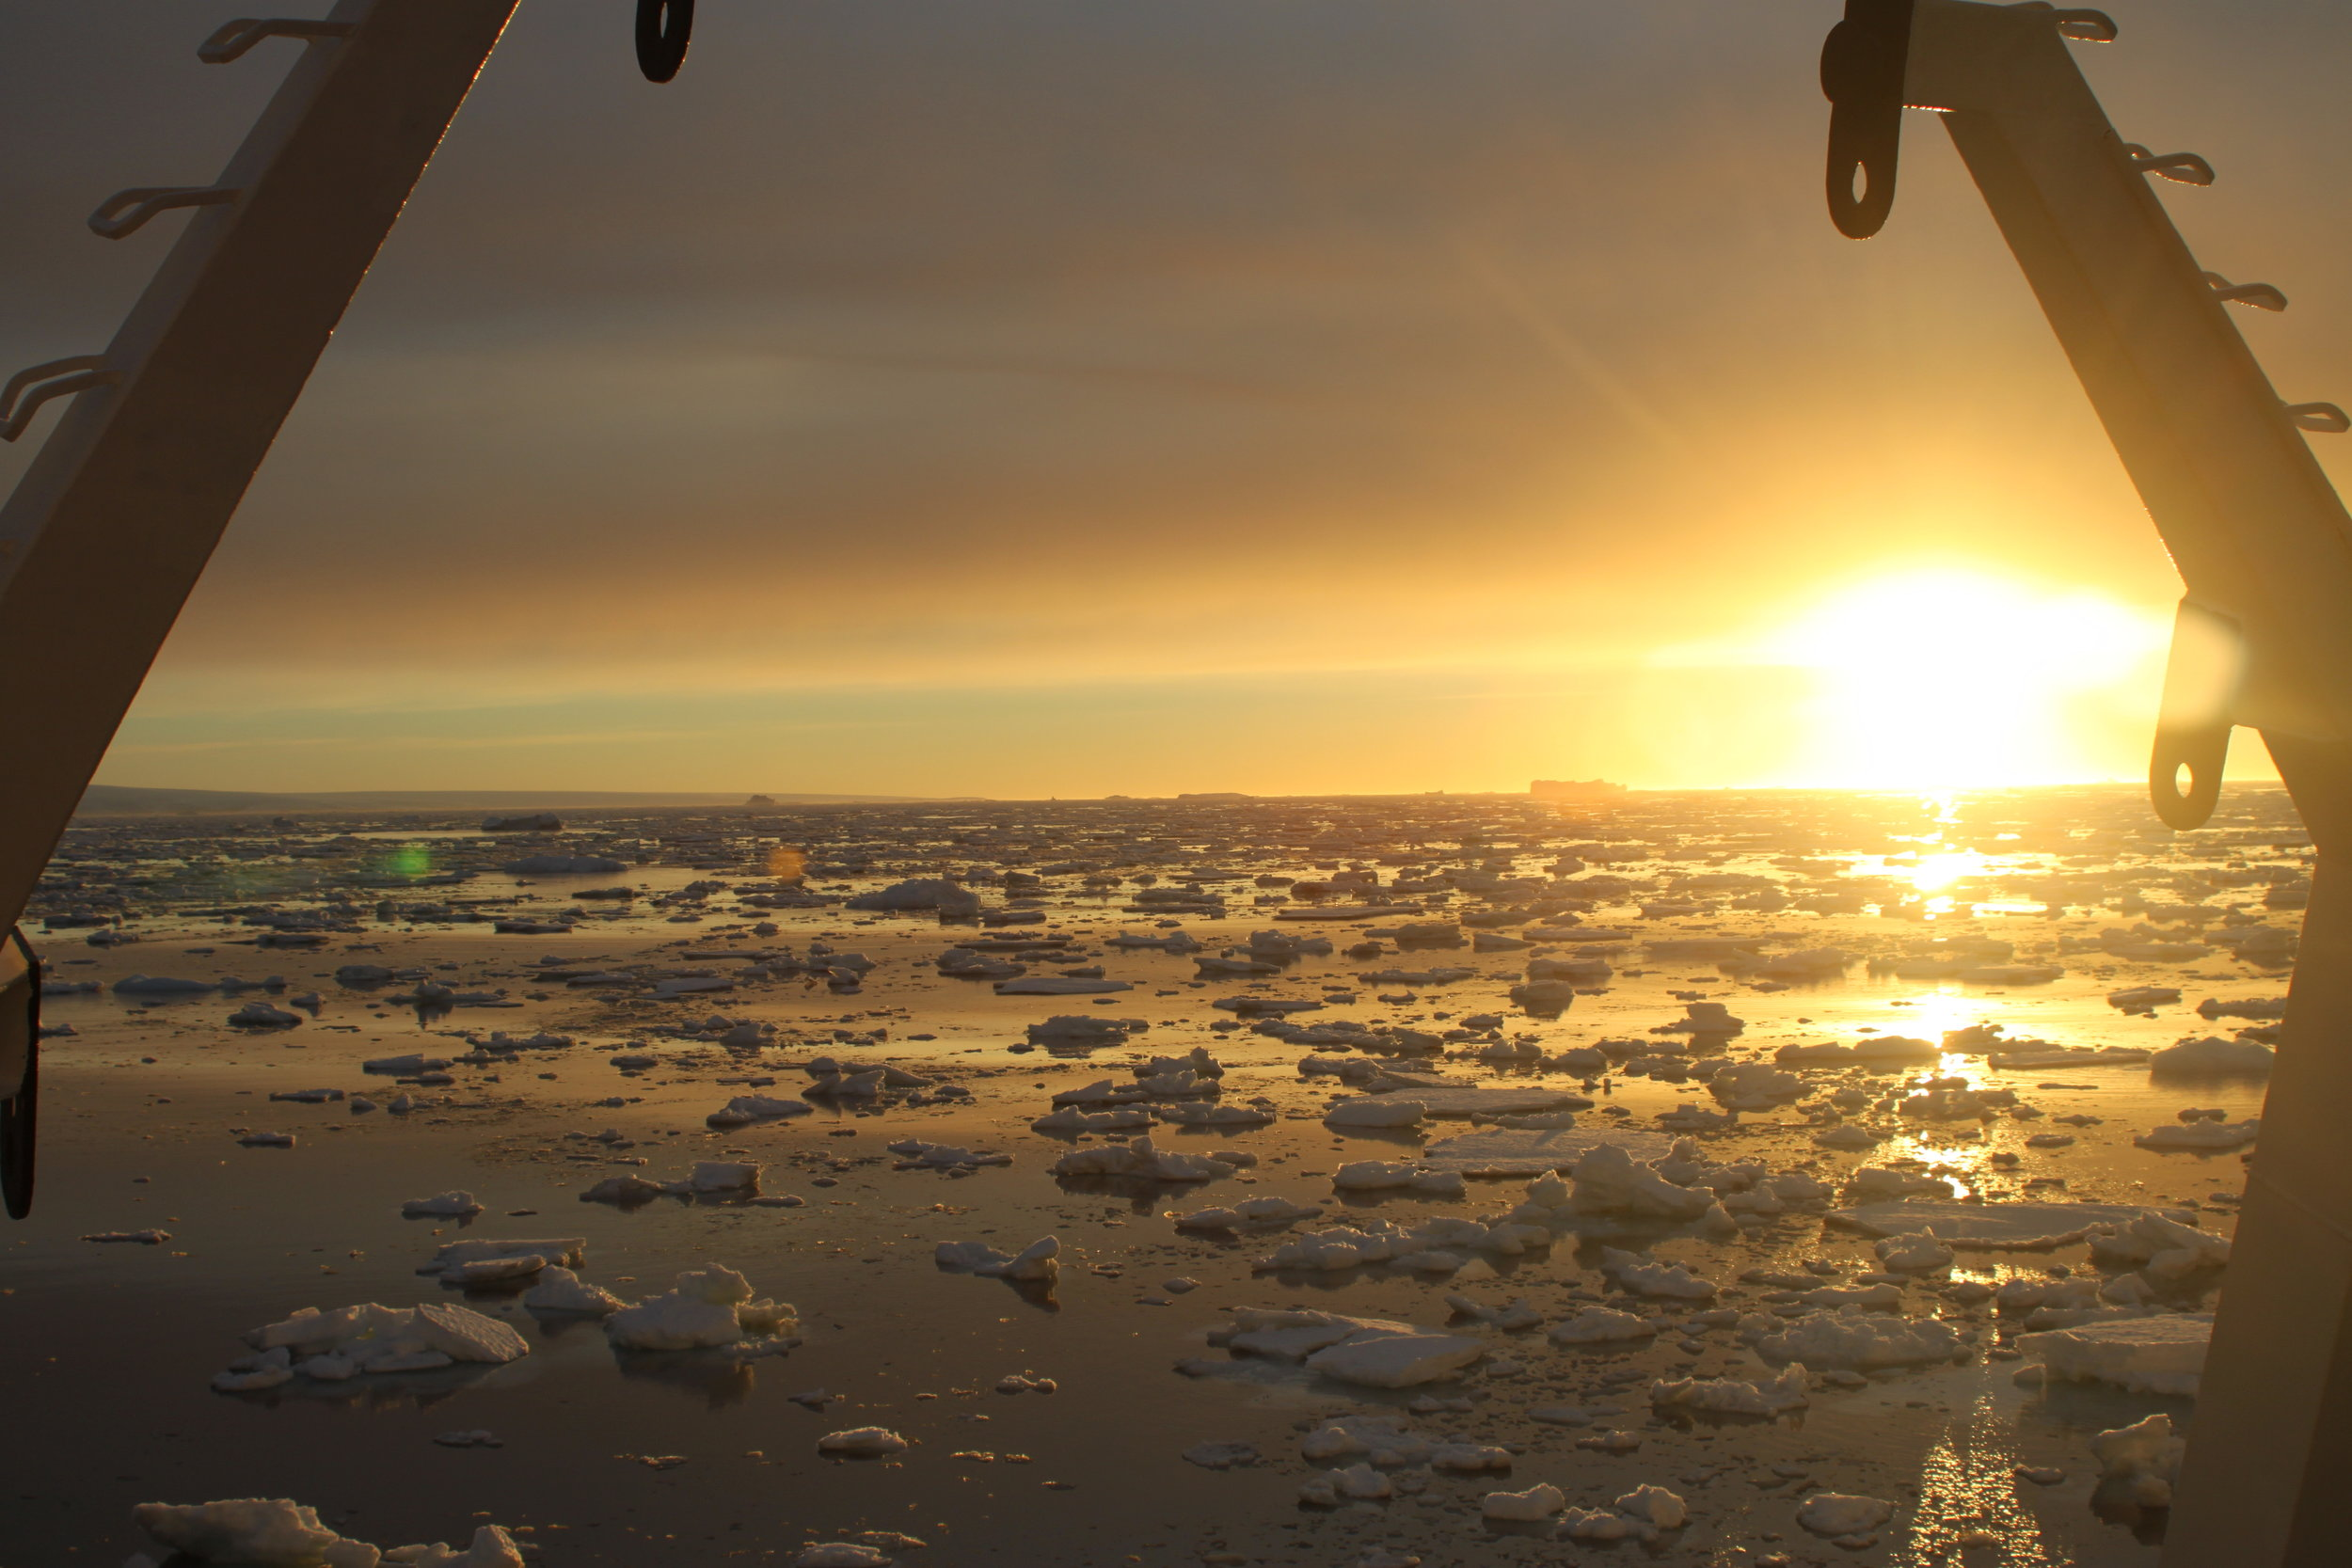 Somewhere just north of the Antarctic Circle, nearly midnight on New Year's Eve. December 31, 2013.